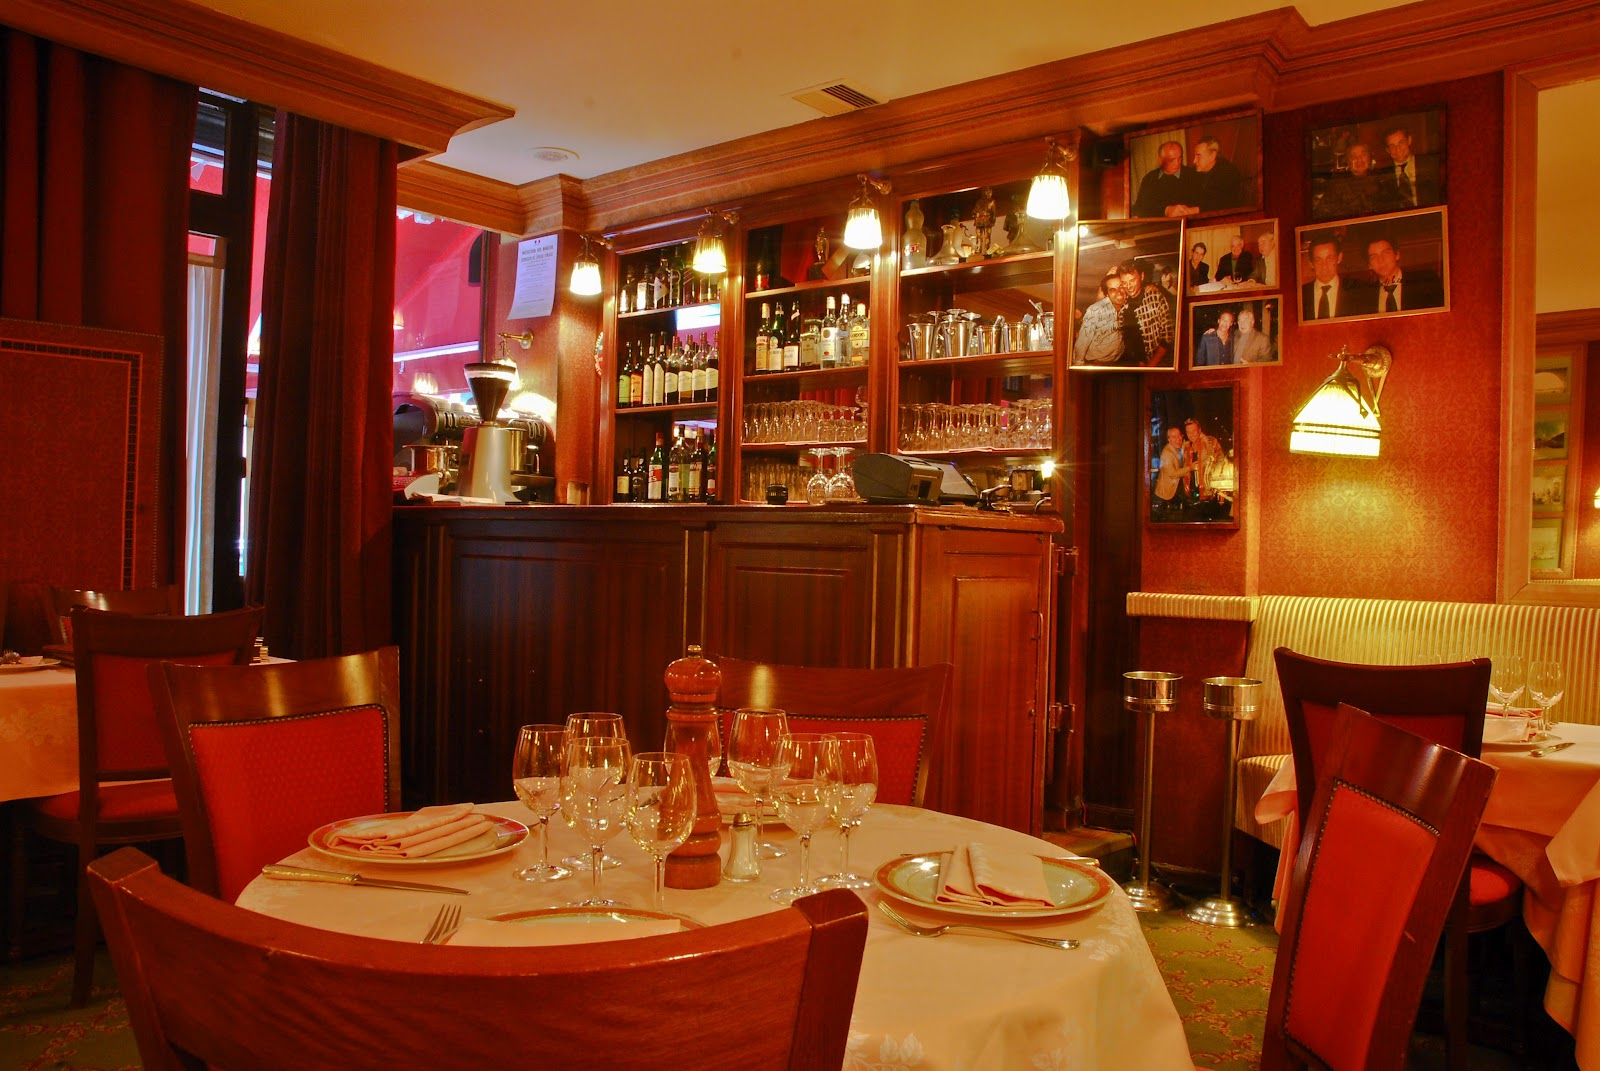 L 39 instant resto giulio rebellato 75 116 paris for Restaurant italien 95